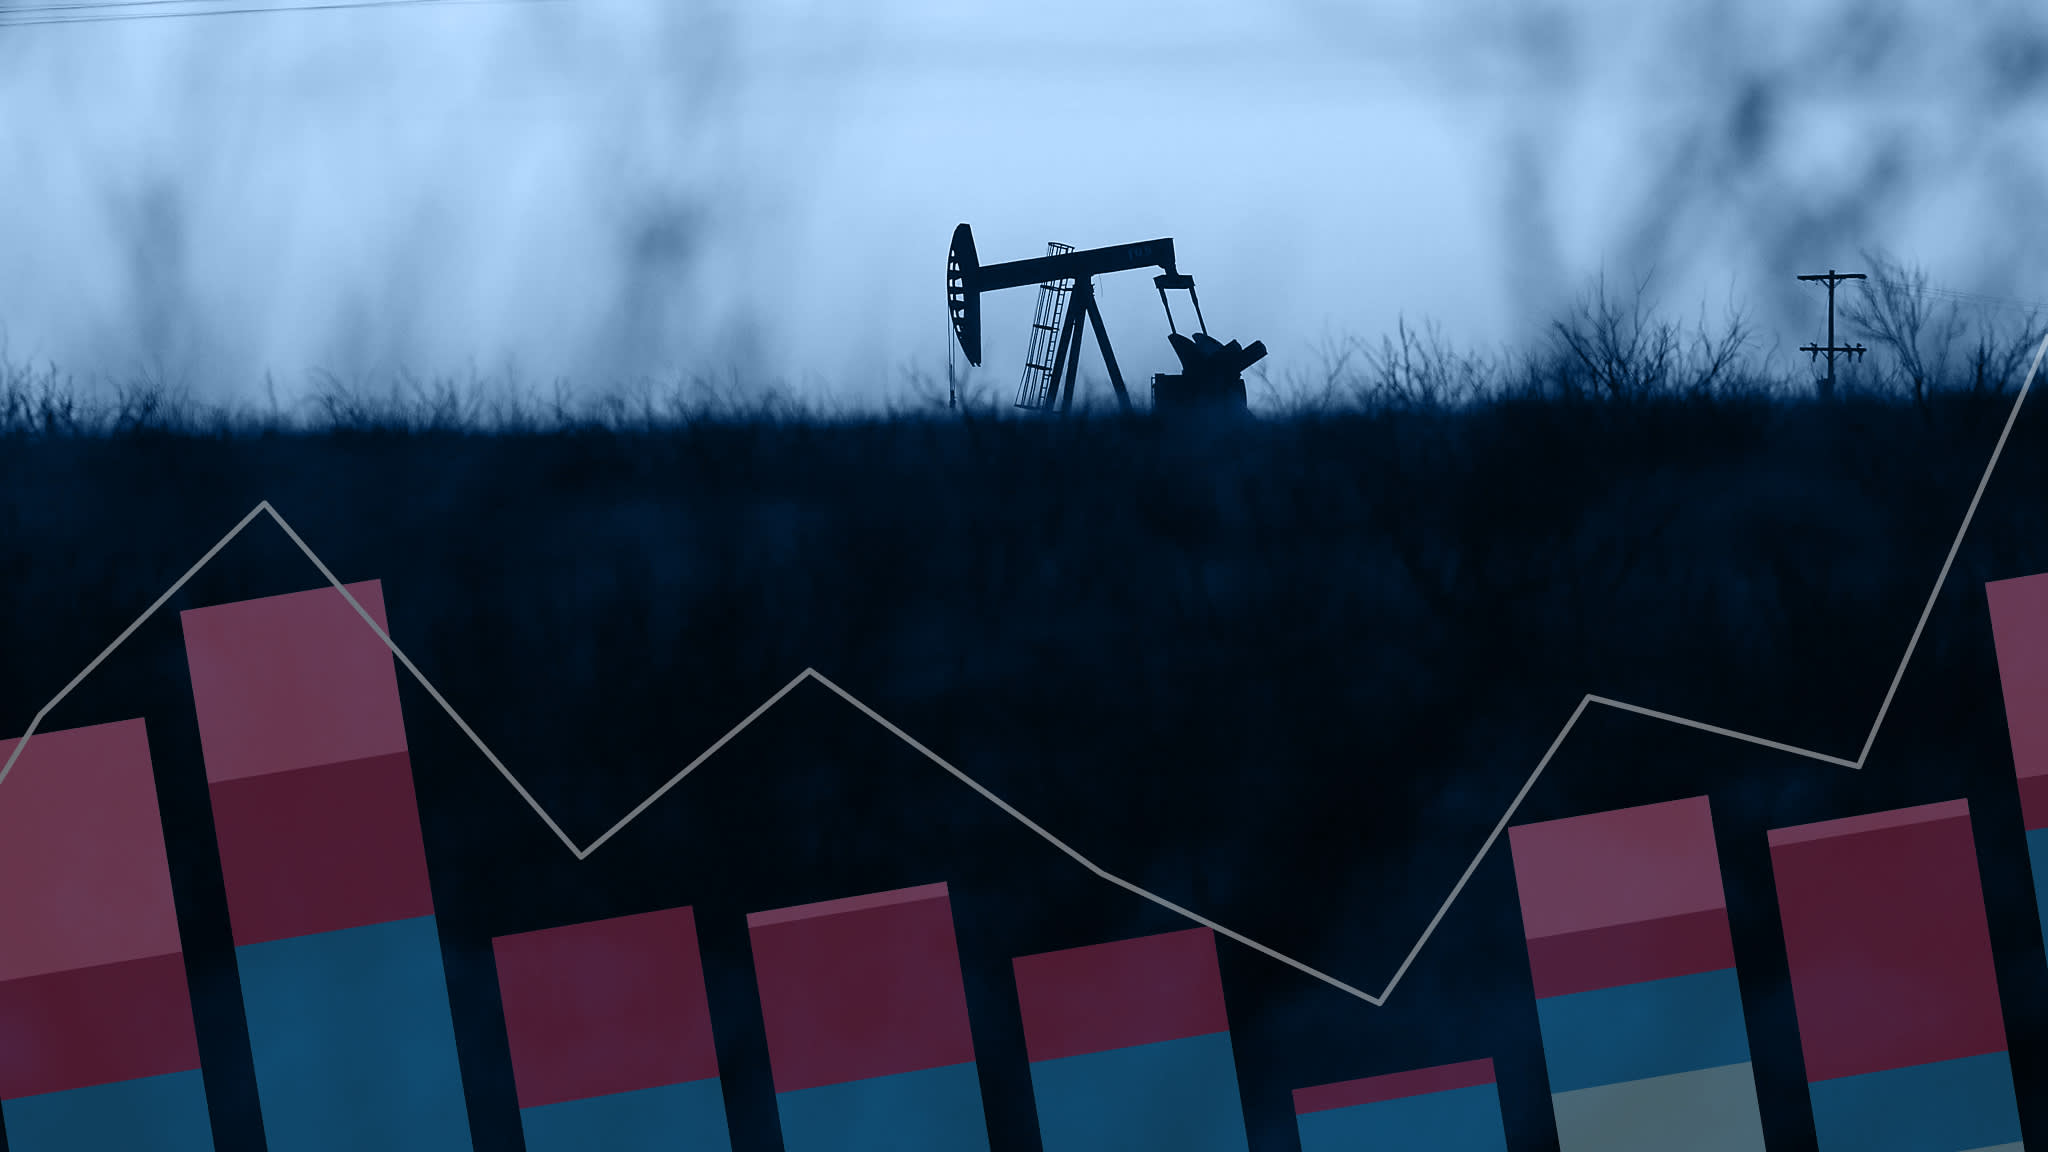 Oil price trades near highest level since 2015 | Financial Times